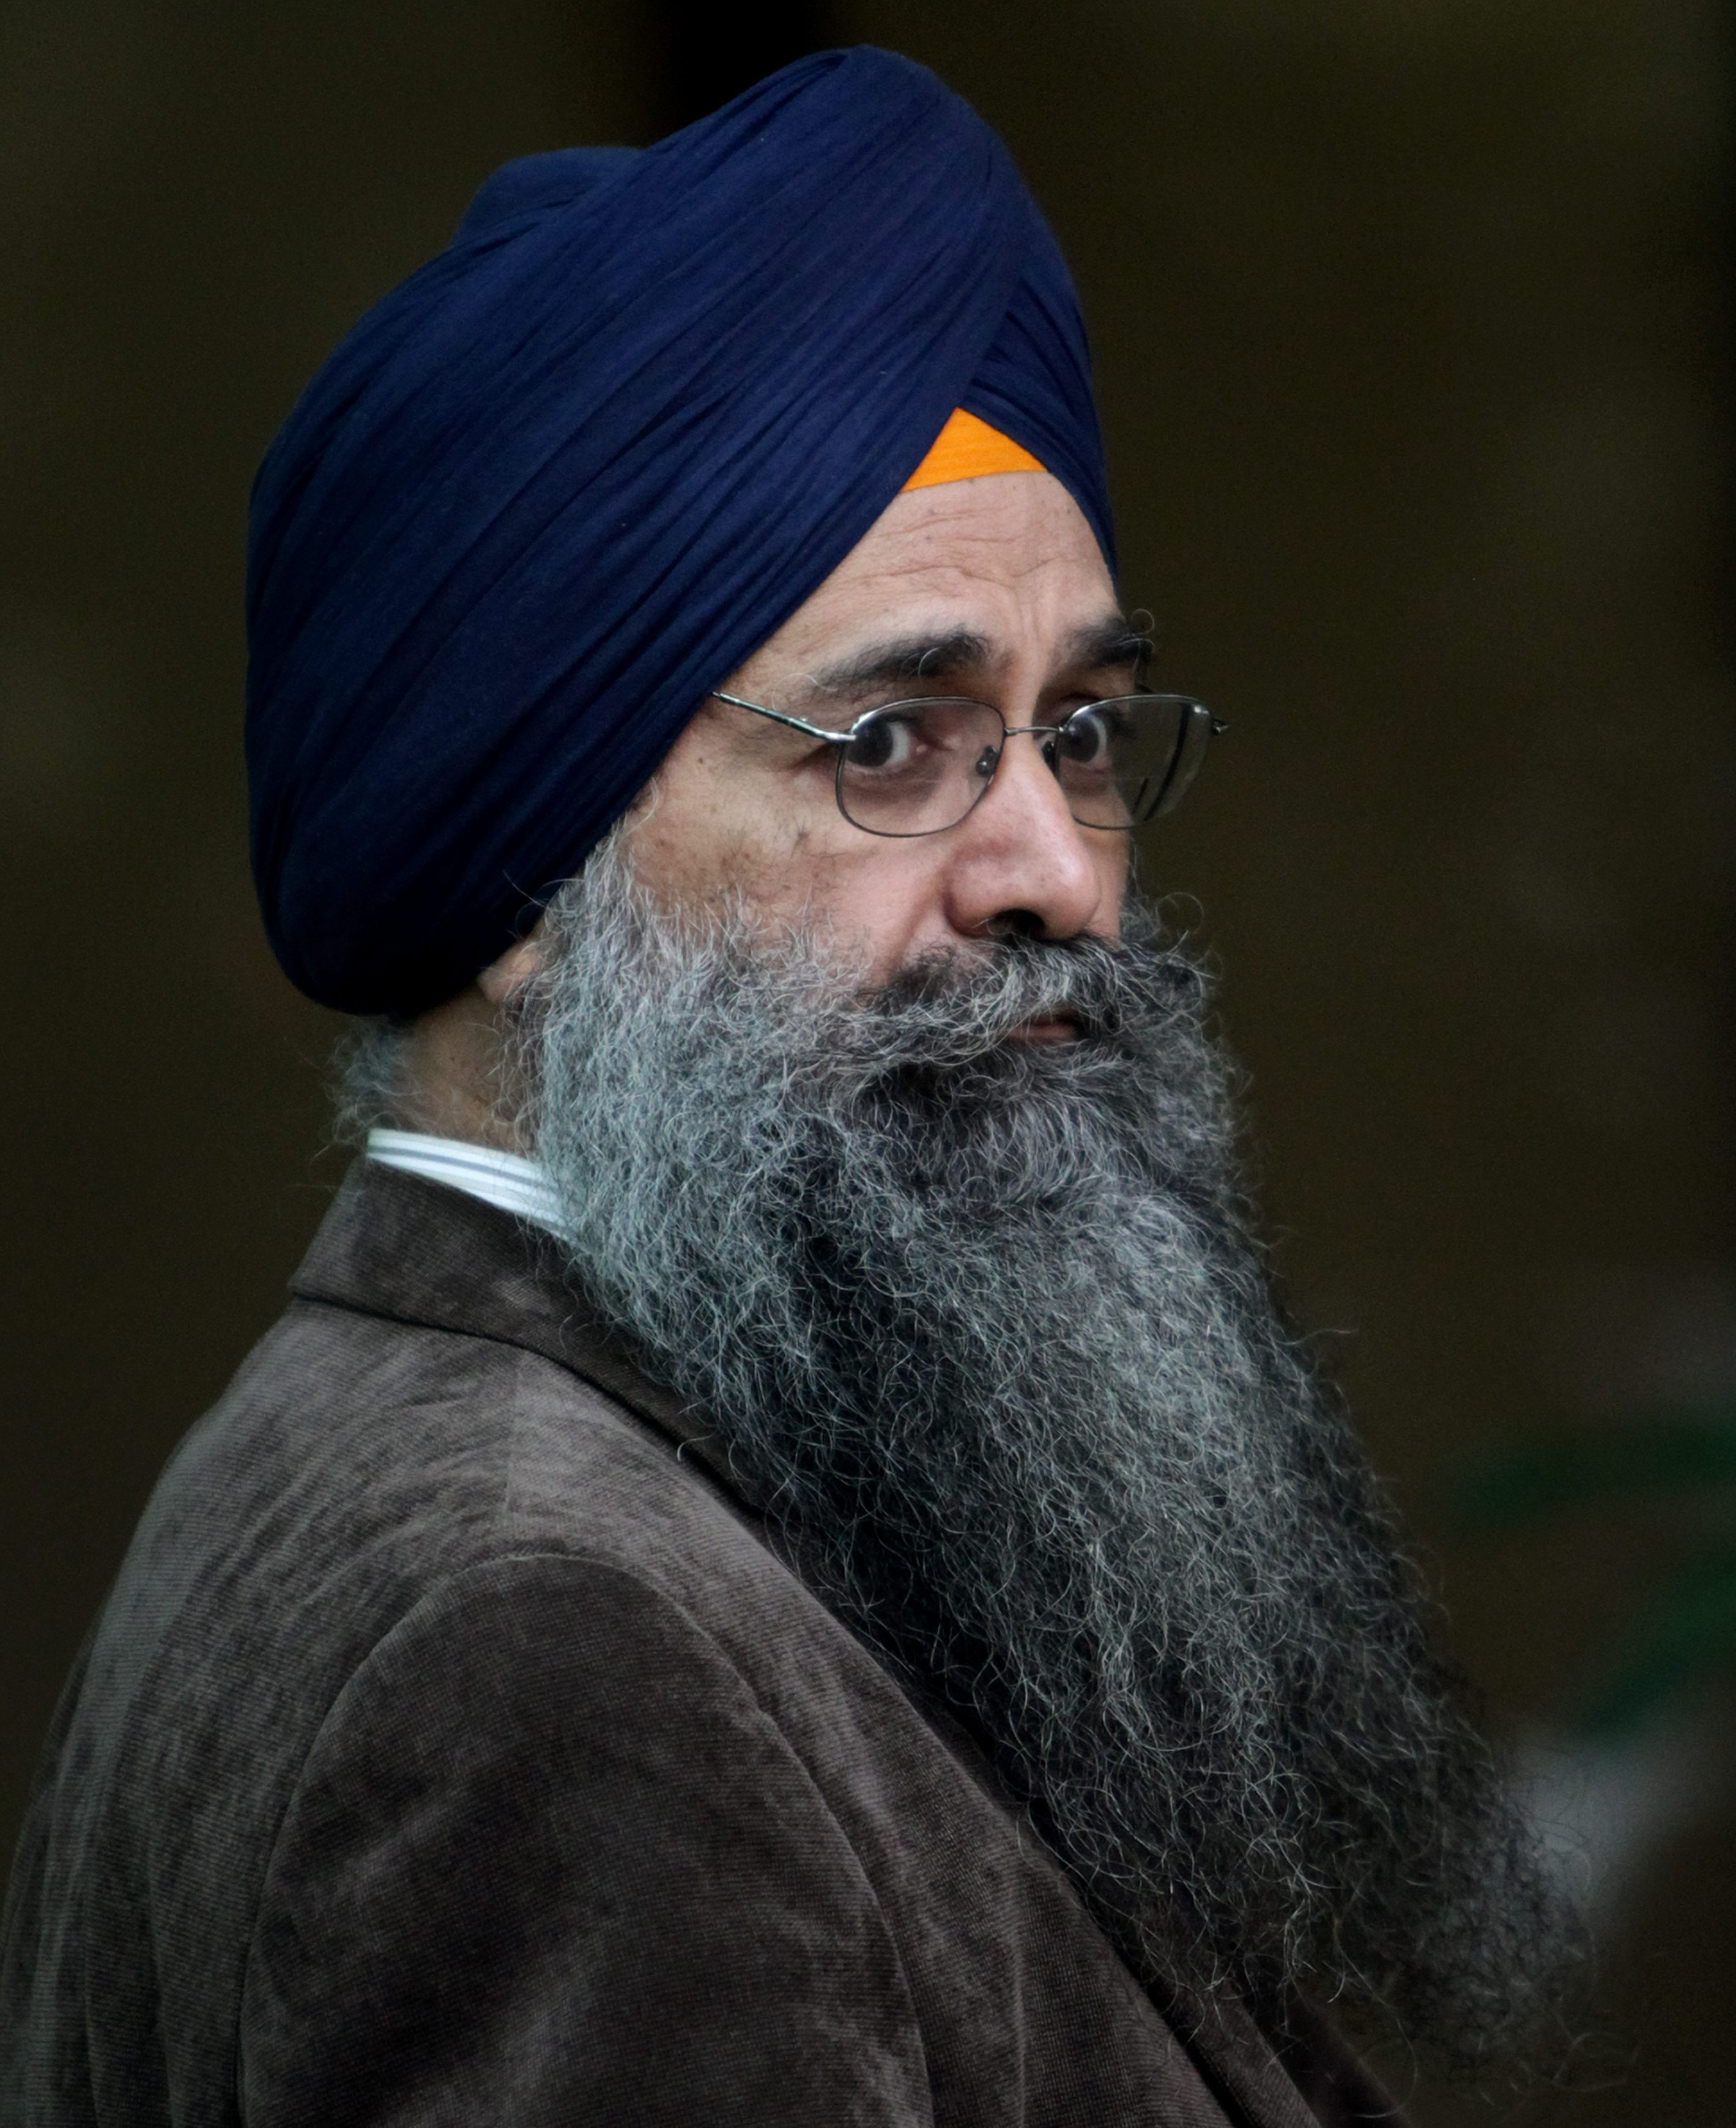 Inderjit Singh Reyat, the only man ever convicted in the Air India bombings of 1985, outside the British Columbia Supreme Court on Friday September 10, 2010